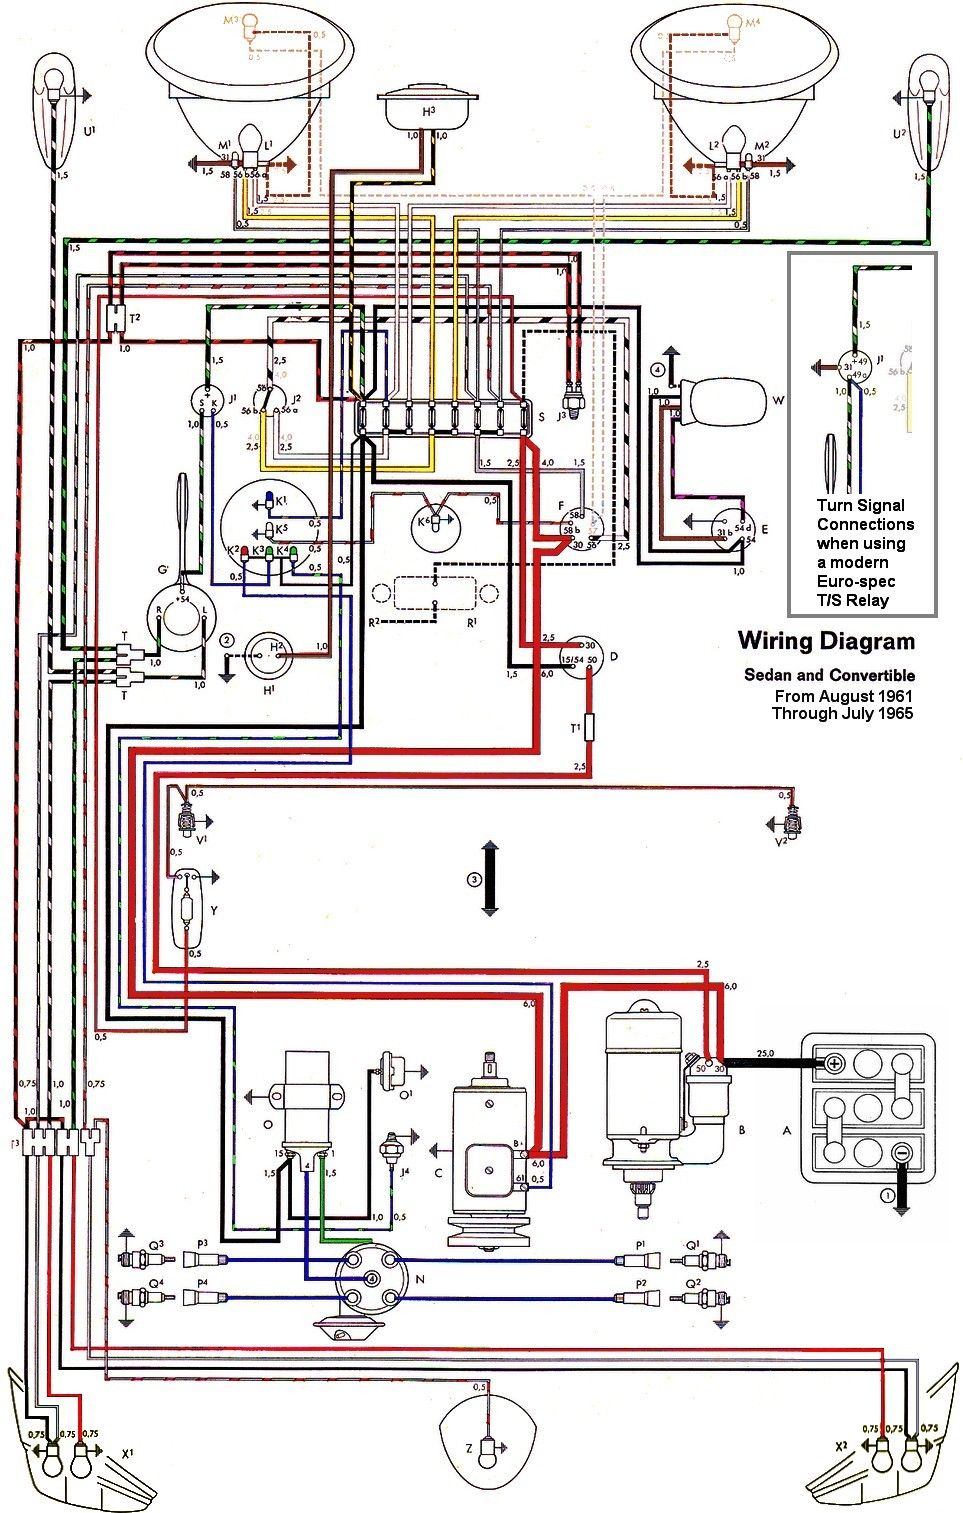 1965 Triumph Wiring Diagram Reinvent Your Mazda Coil Images Gallery